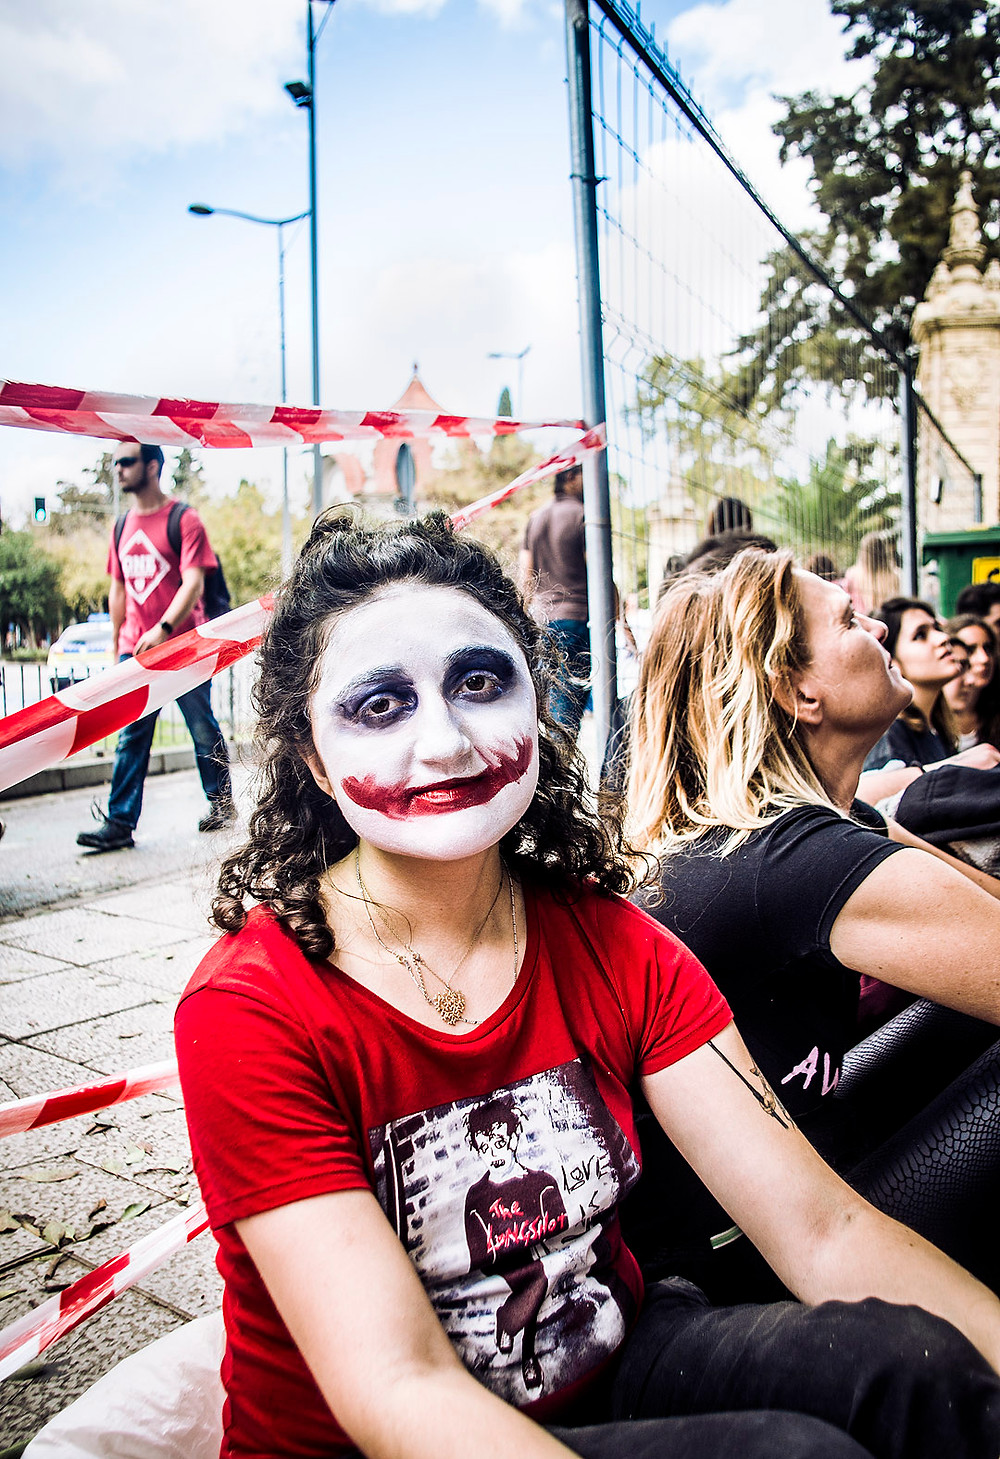 Green Day fans lining up for MTV World Stage in Seville